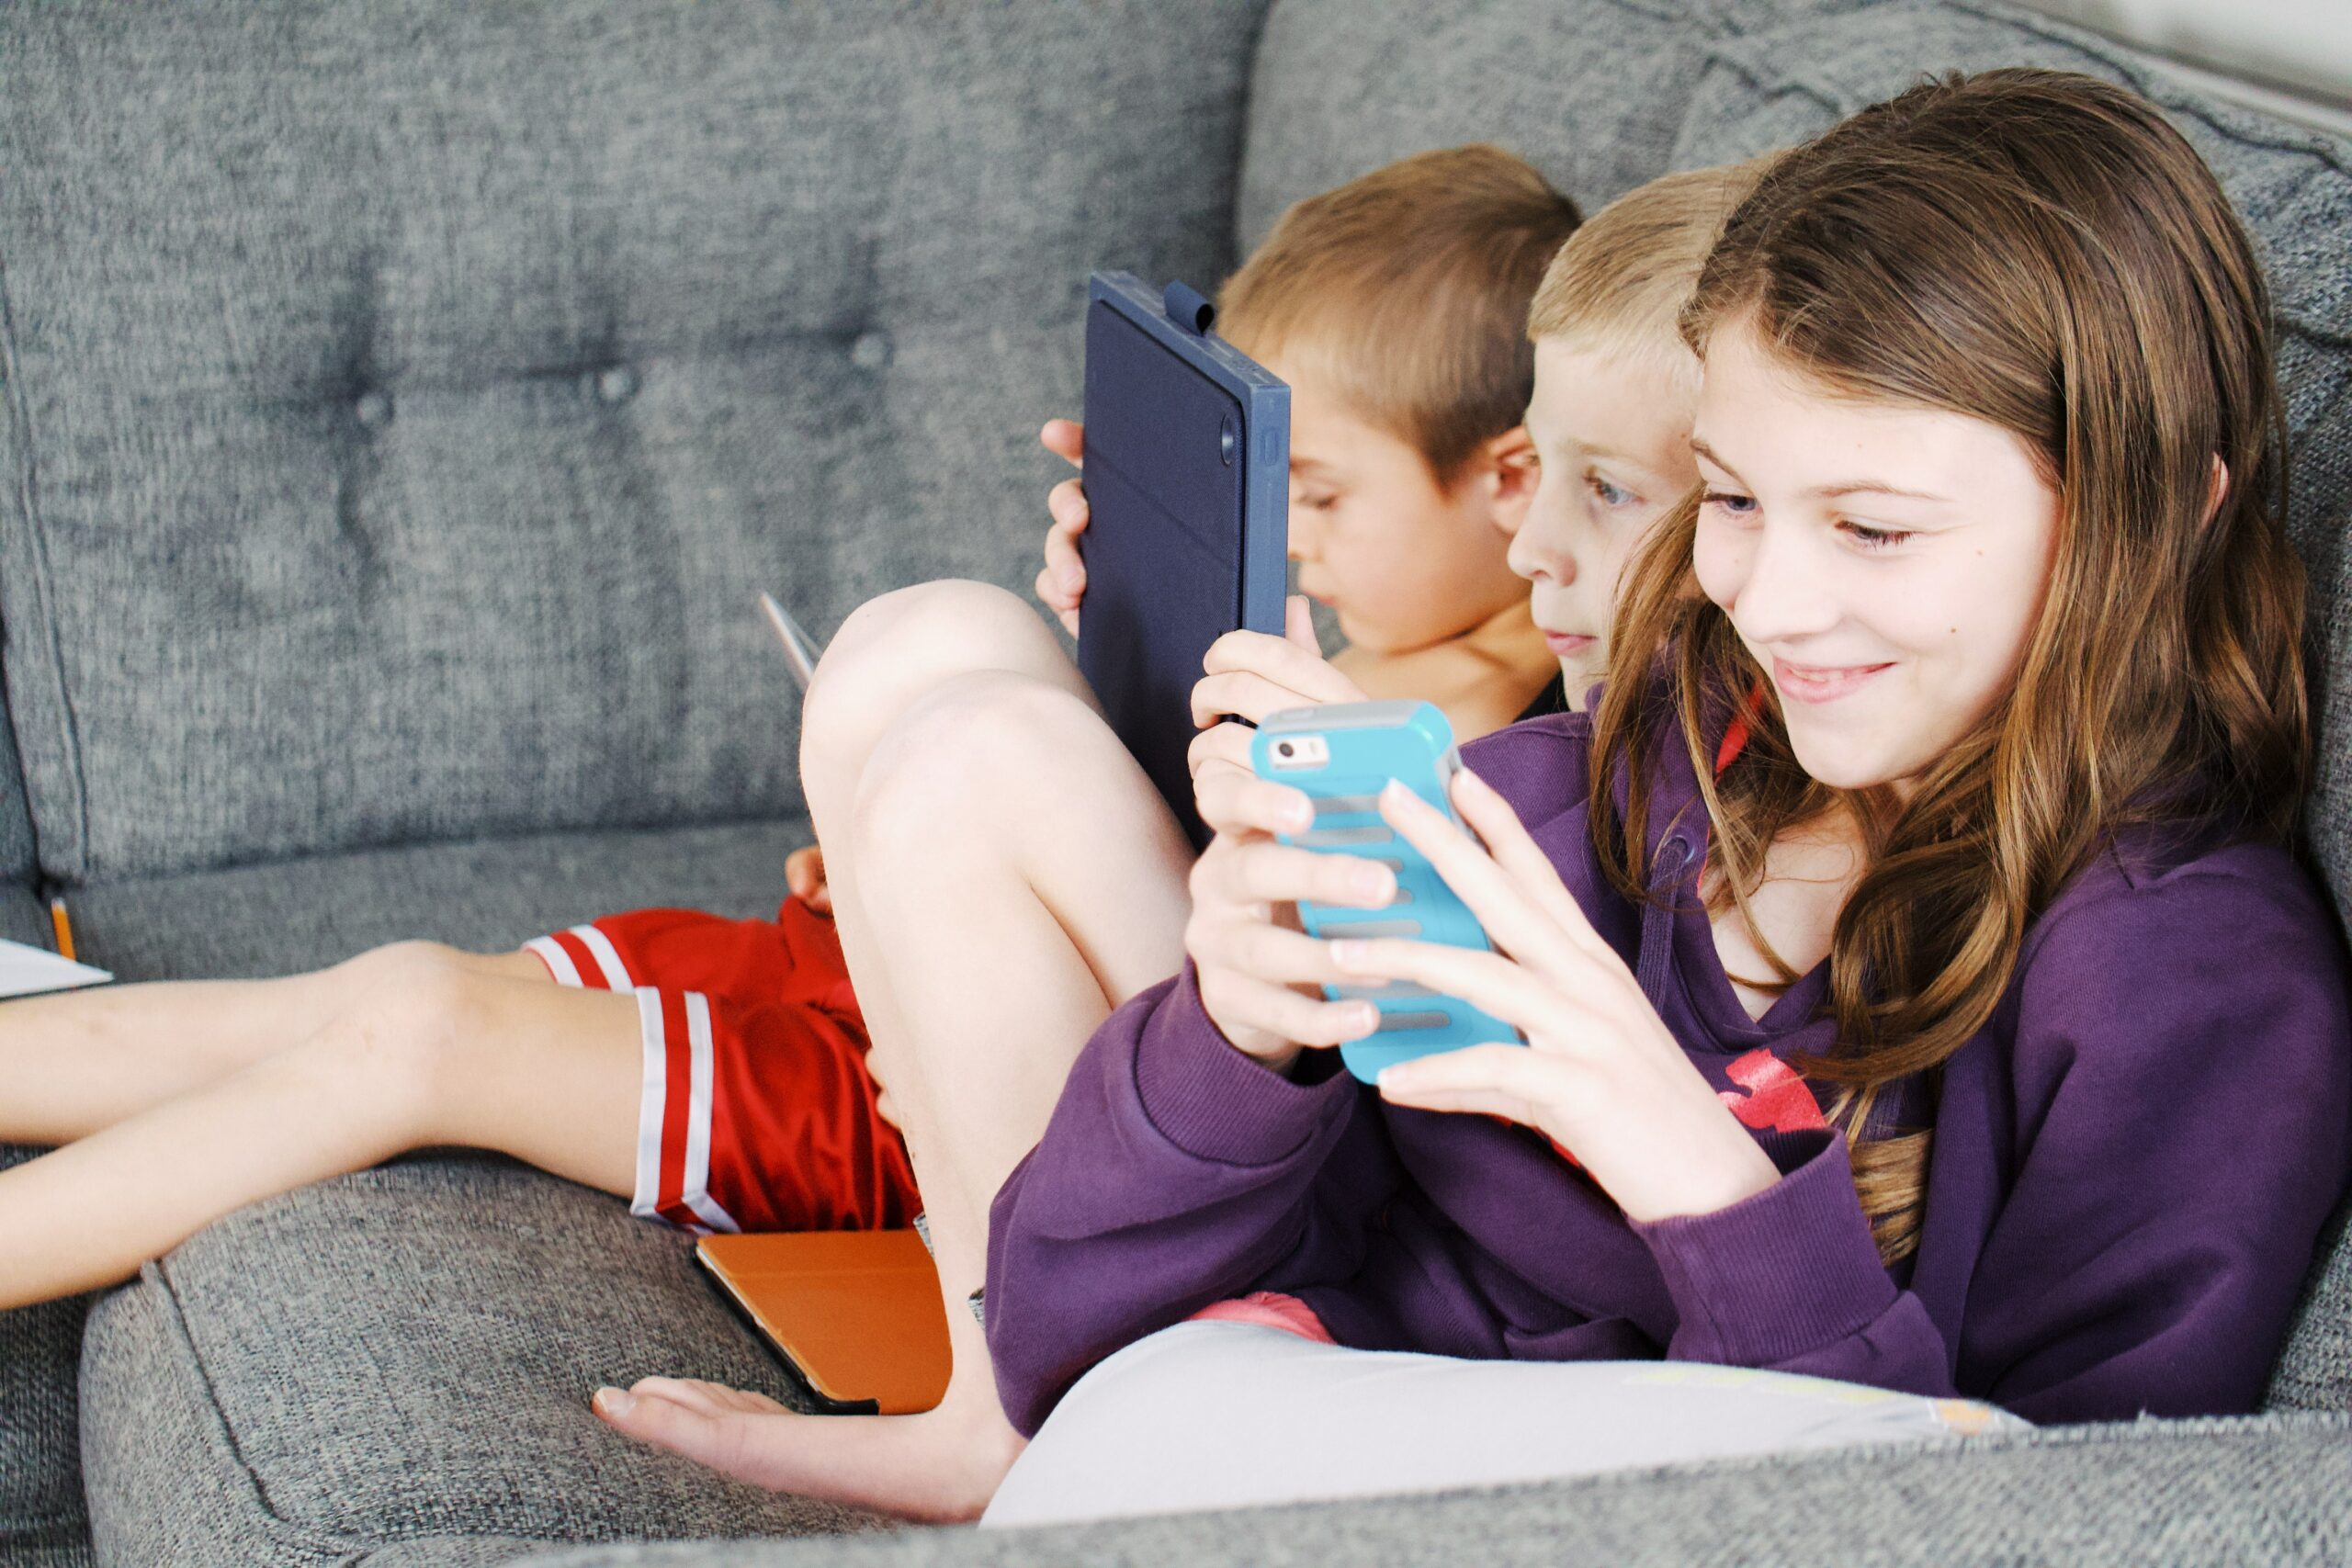 kids using their mobile devices